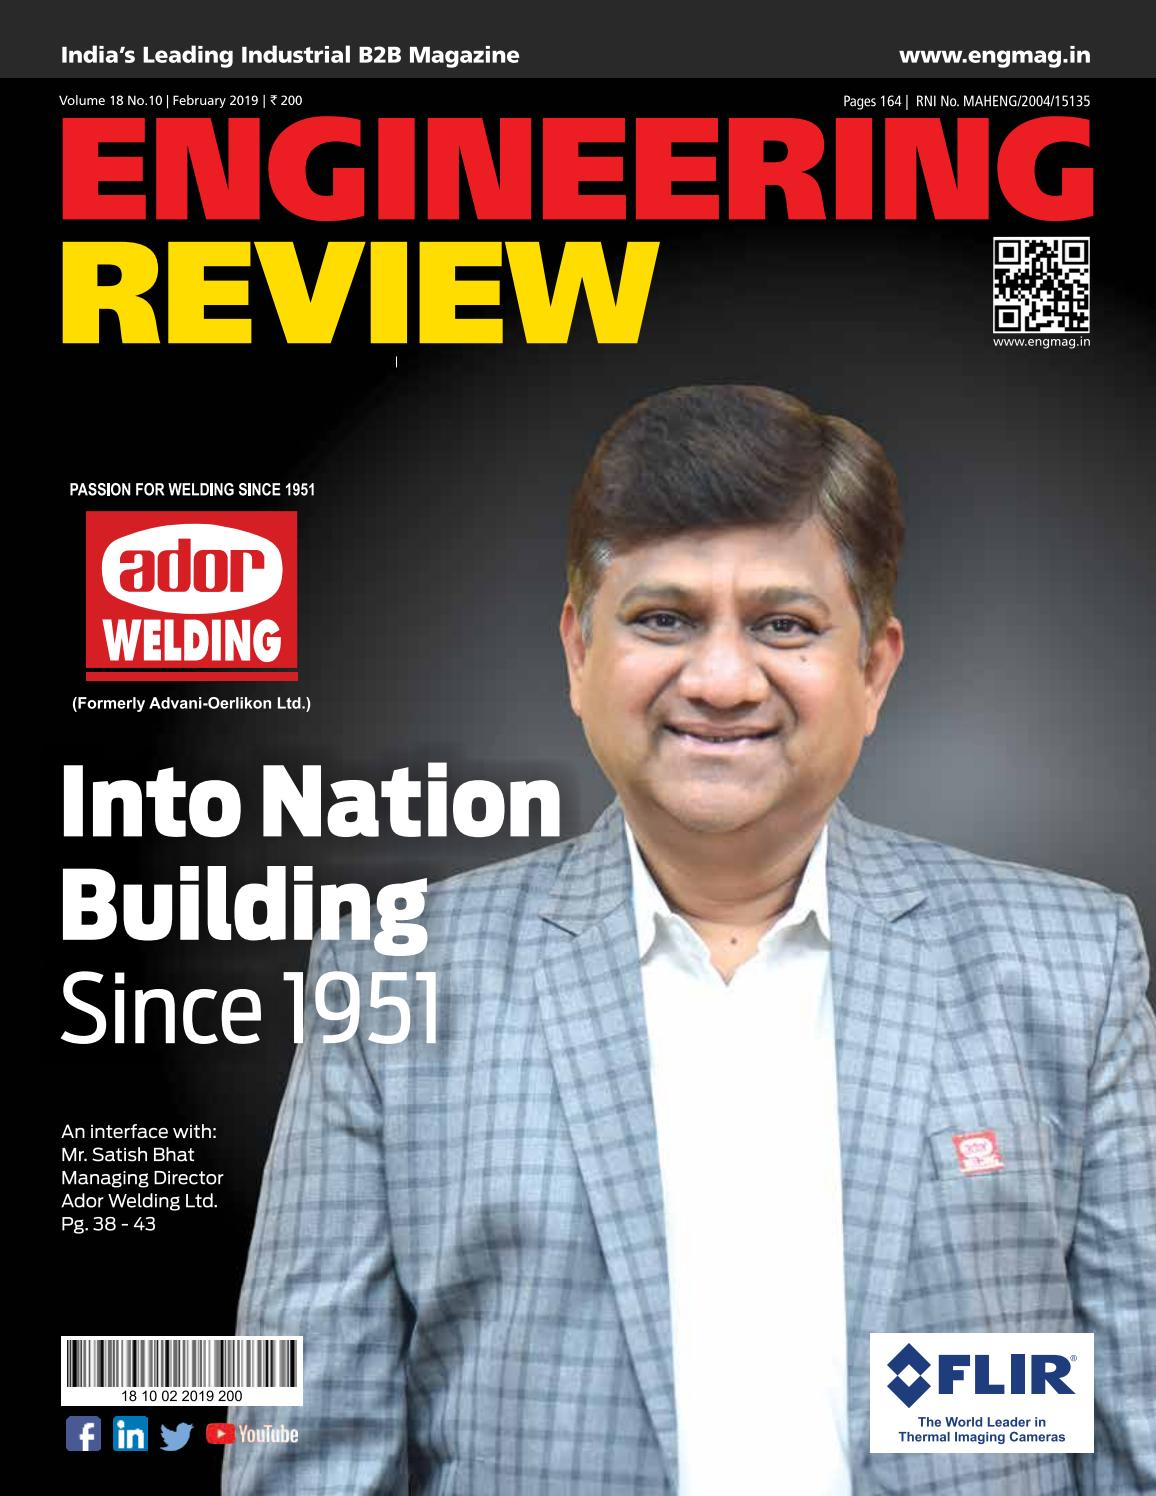 ENGINEERING REVIEW - FEBRUARY 2019 by Divya Media